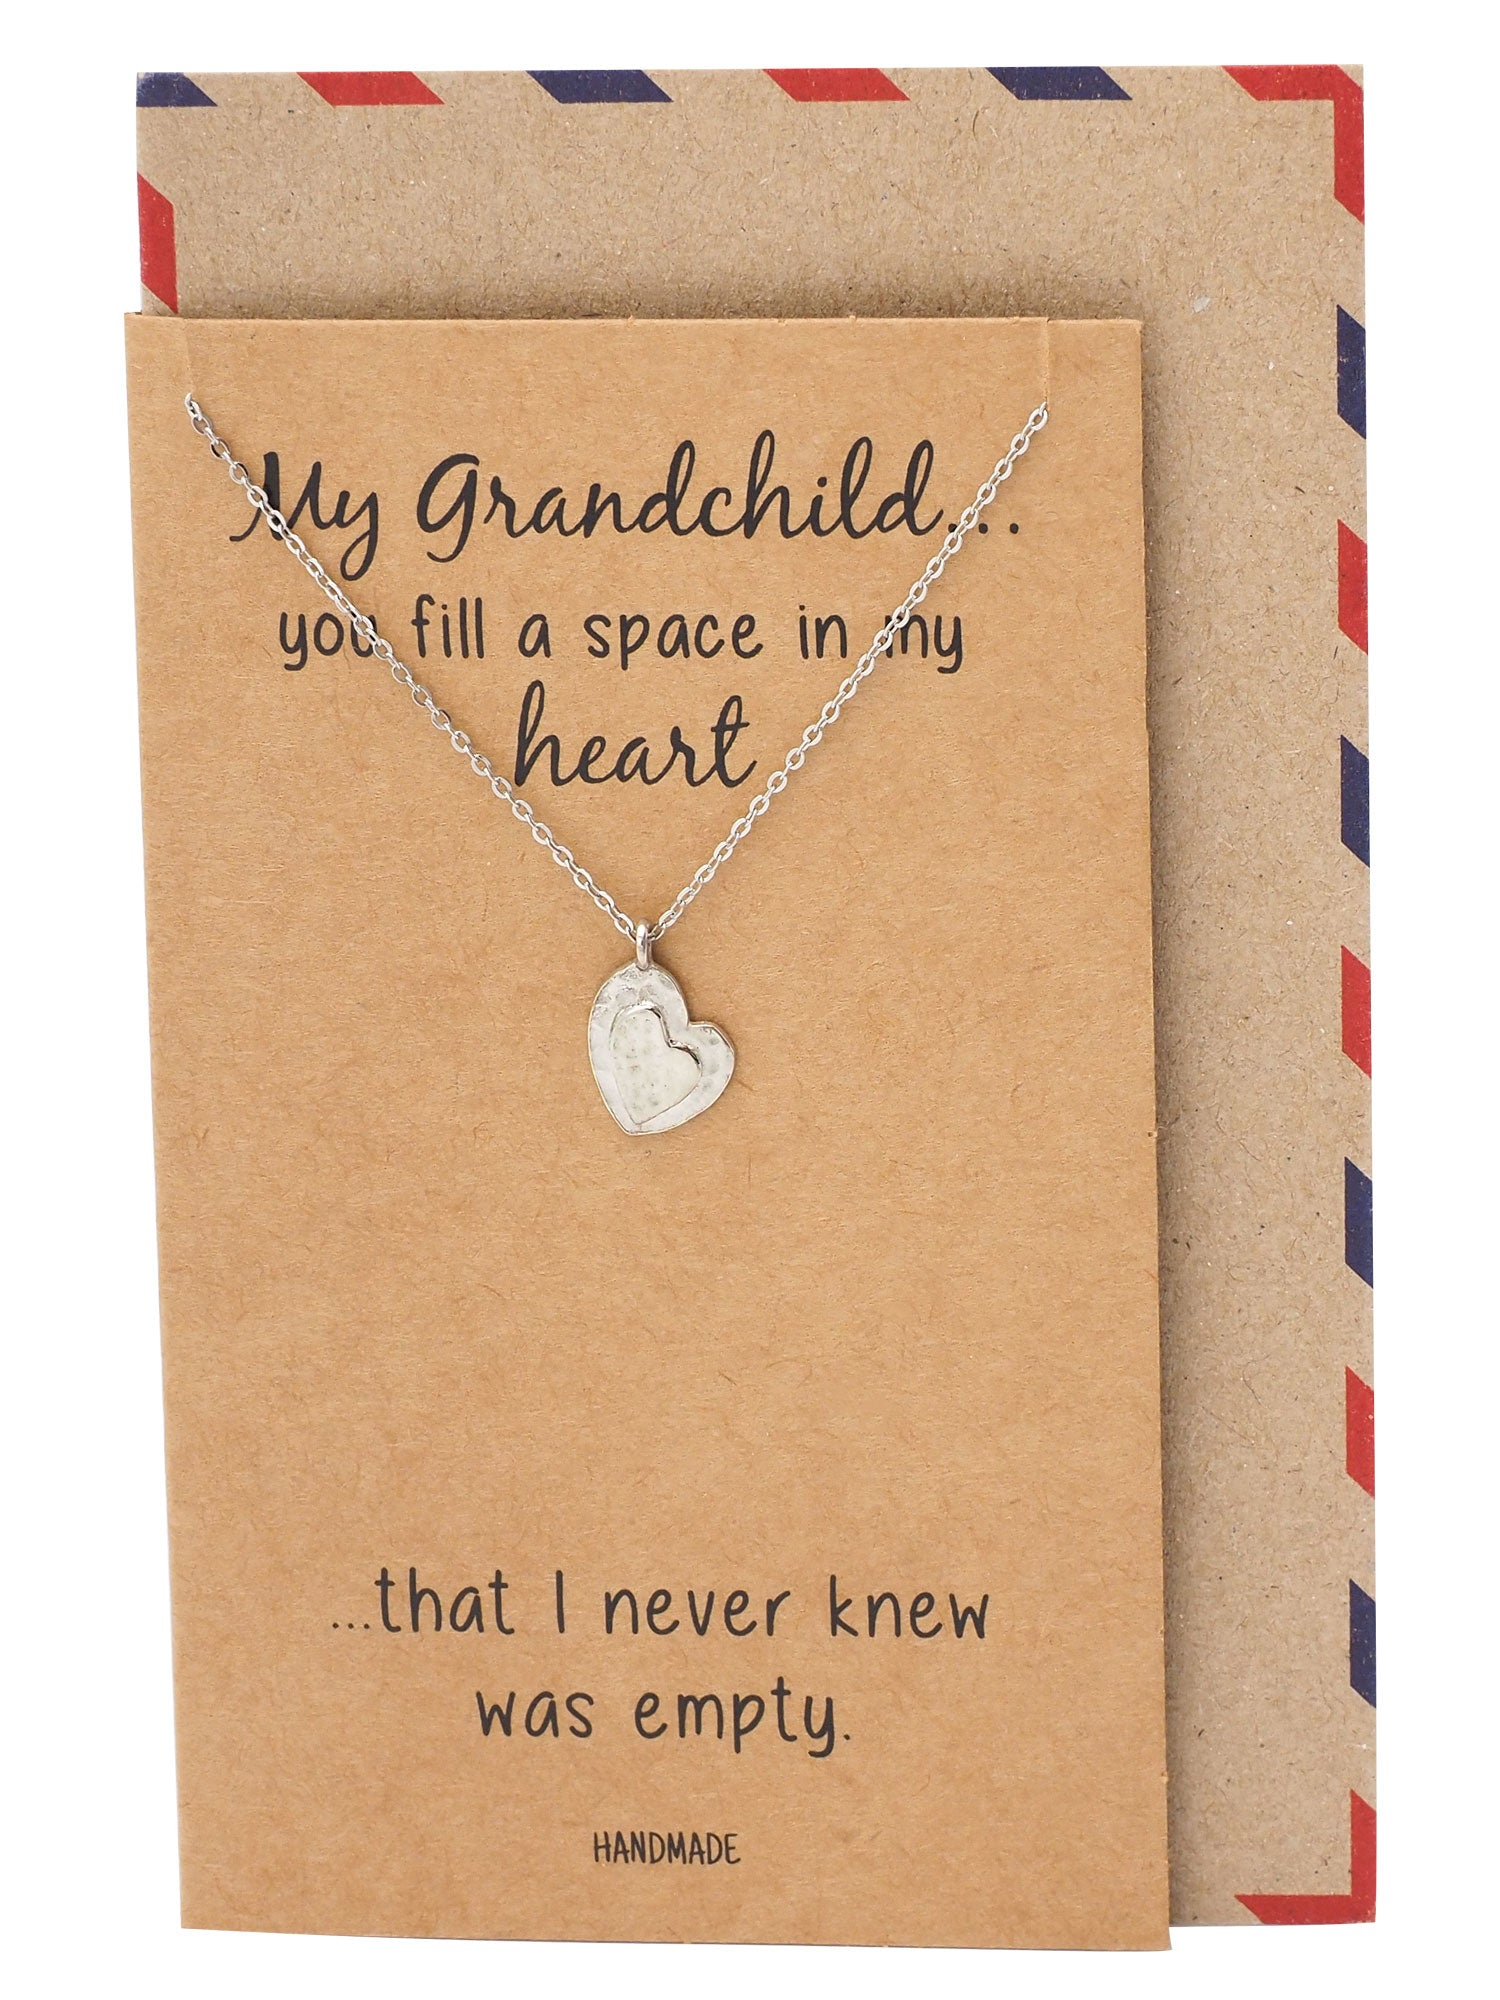 Tricia Heart Necklace, Granddaughter Jewelry Gifts with Heart Pendant